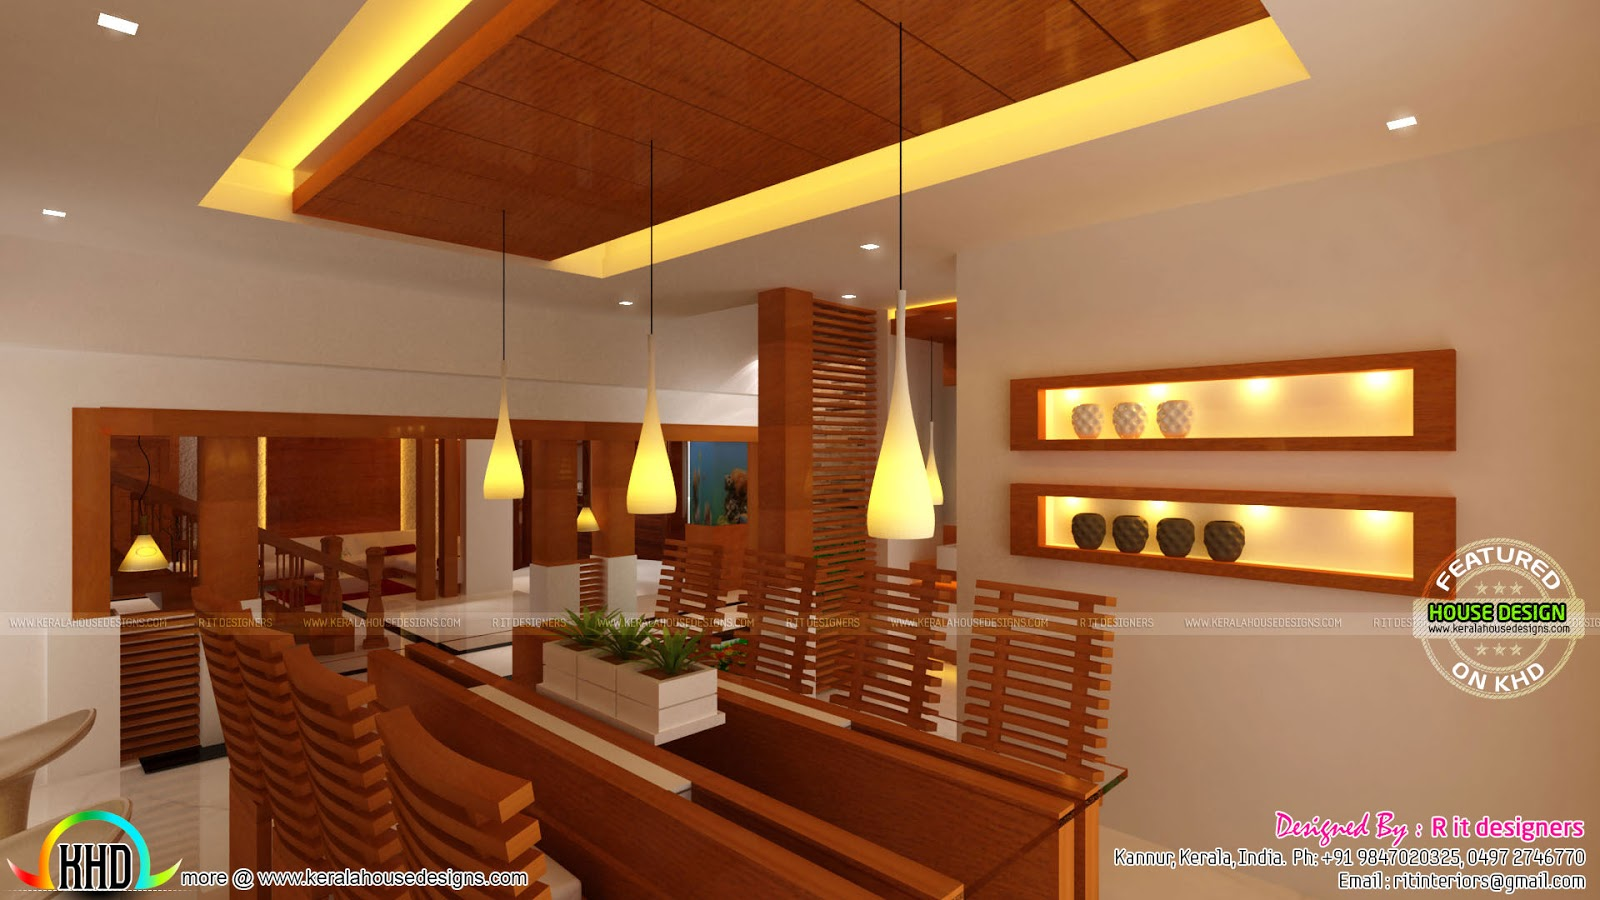 Wooden finish interior designs kerala home design and for House design inside